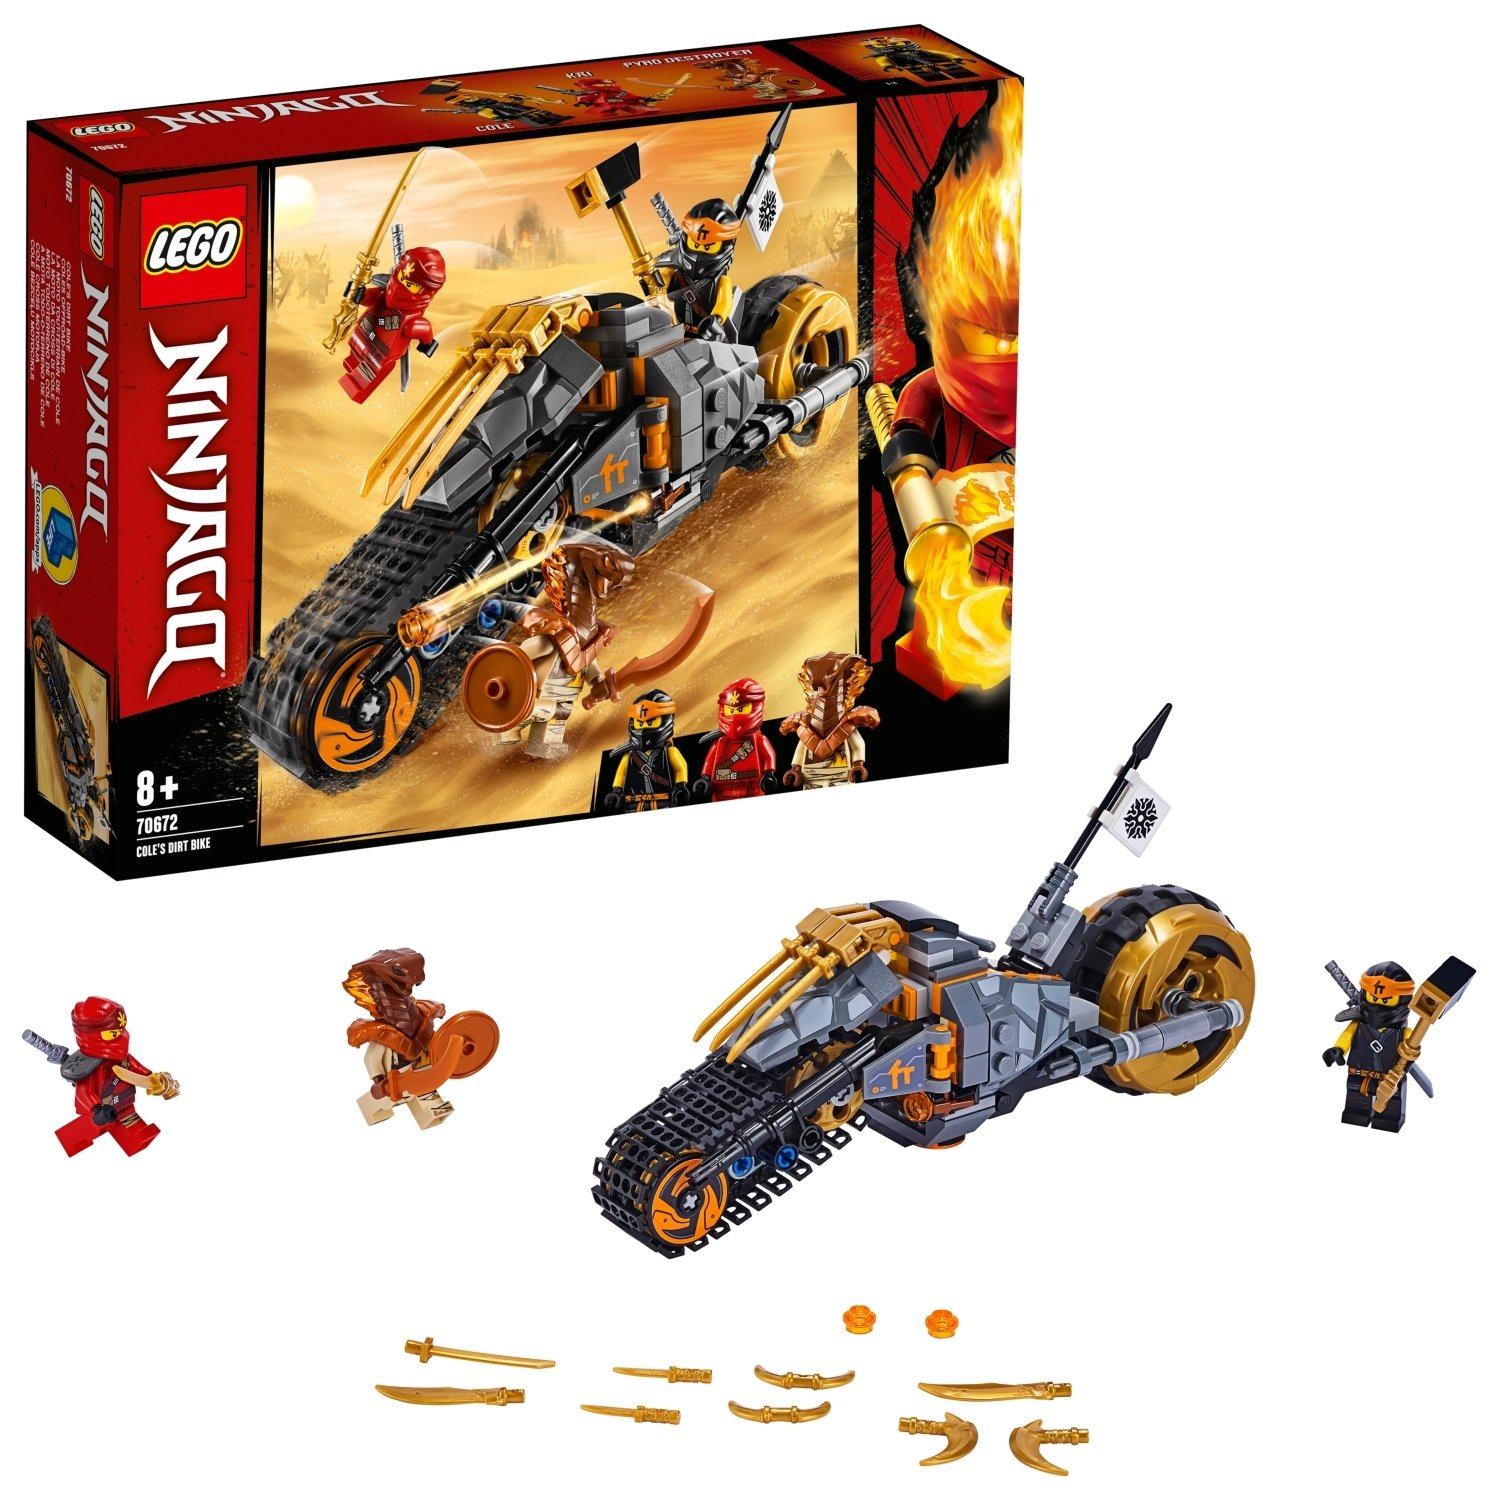 LEGO Ninjago Cole's Dirt Bike Playset - 70672